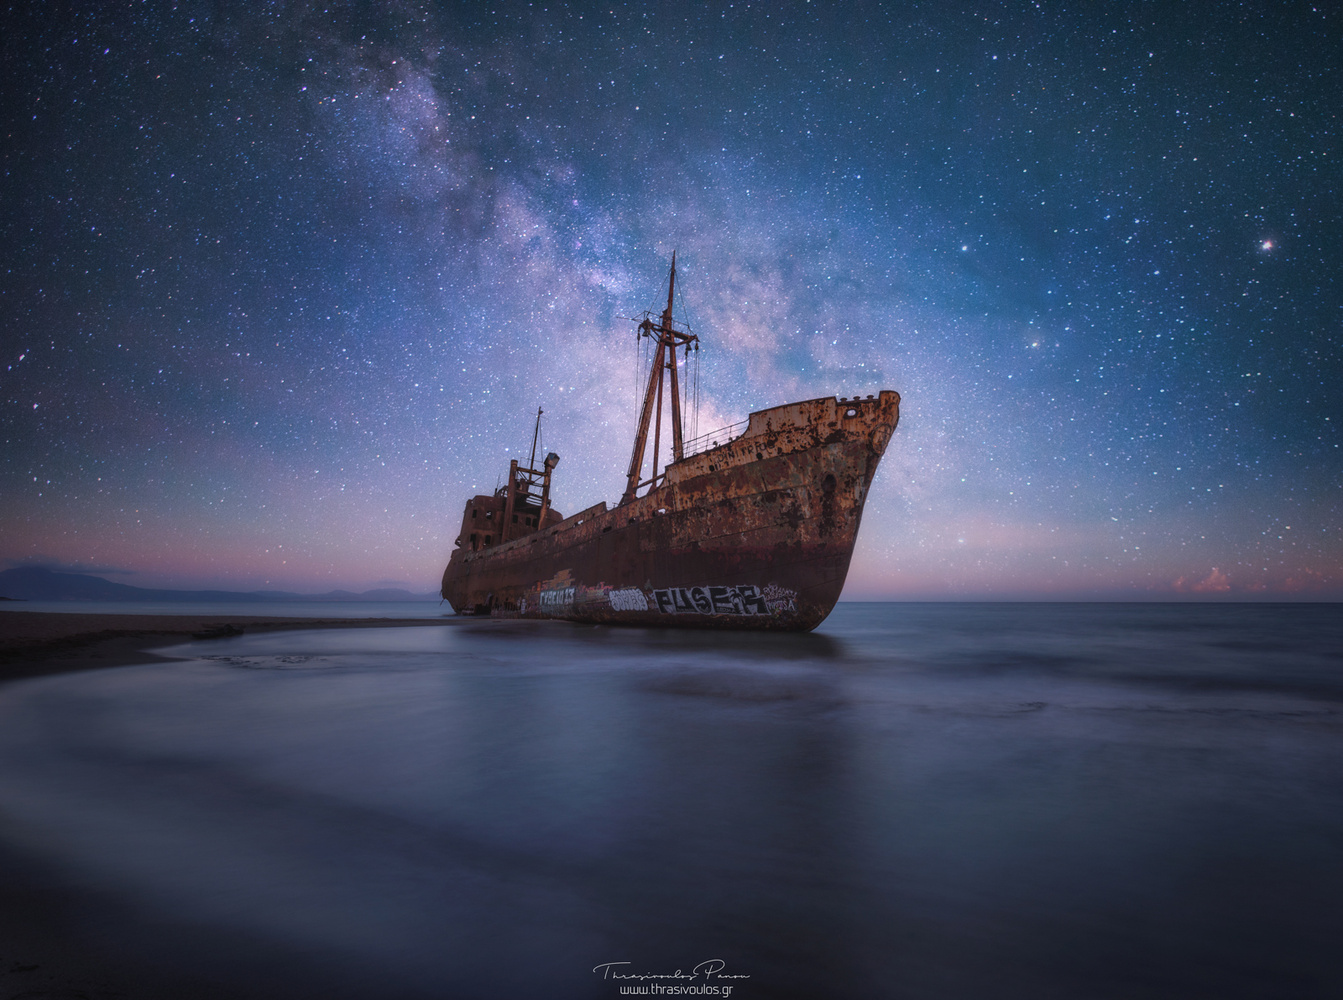 Shipwreck Under the Stars by Thrasivoulos Panou